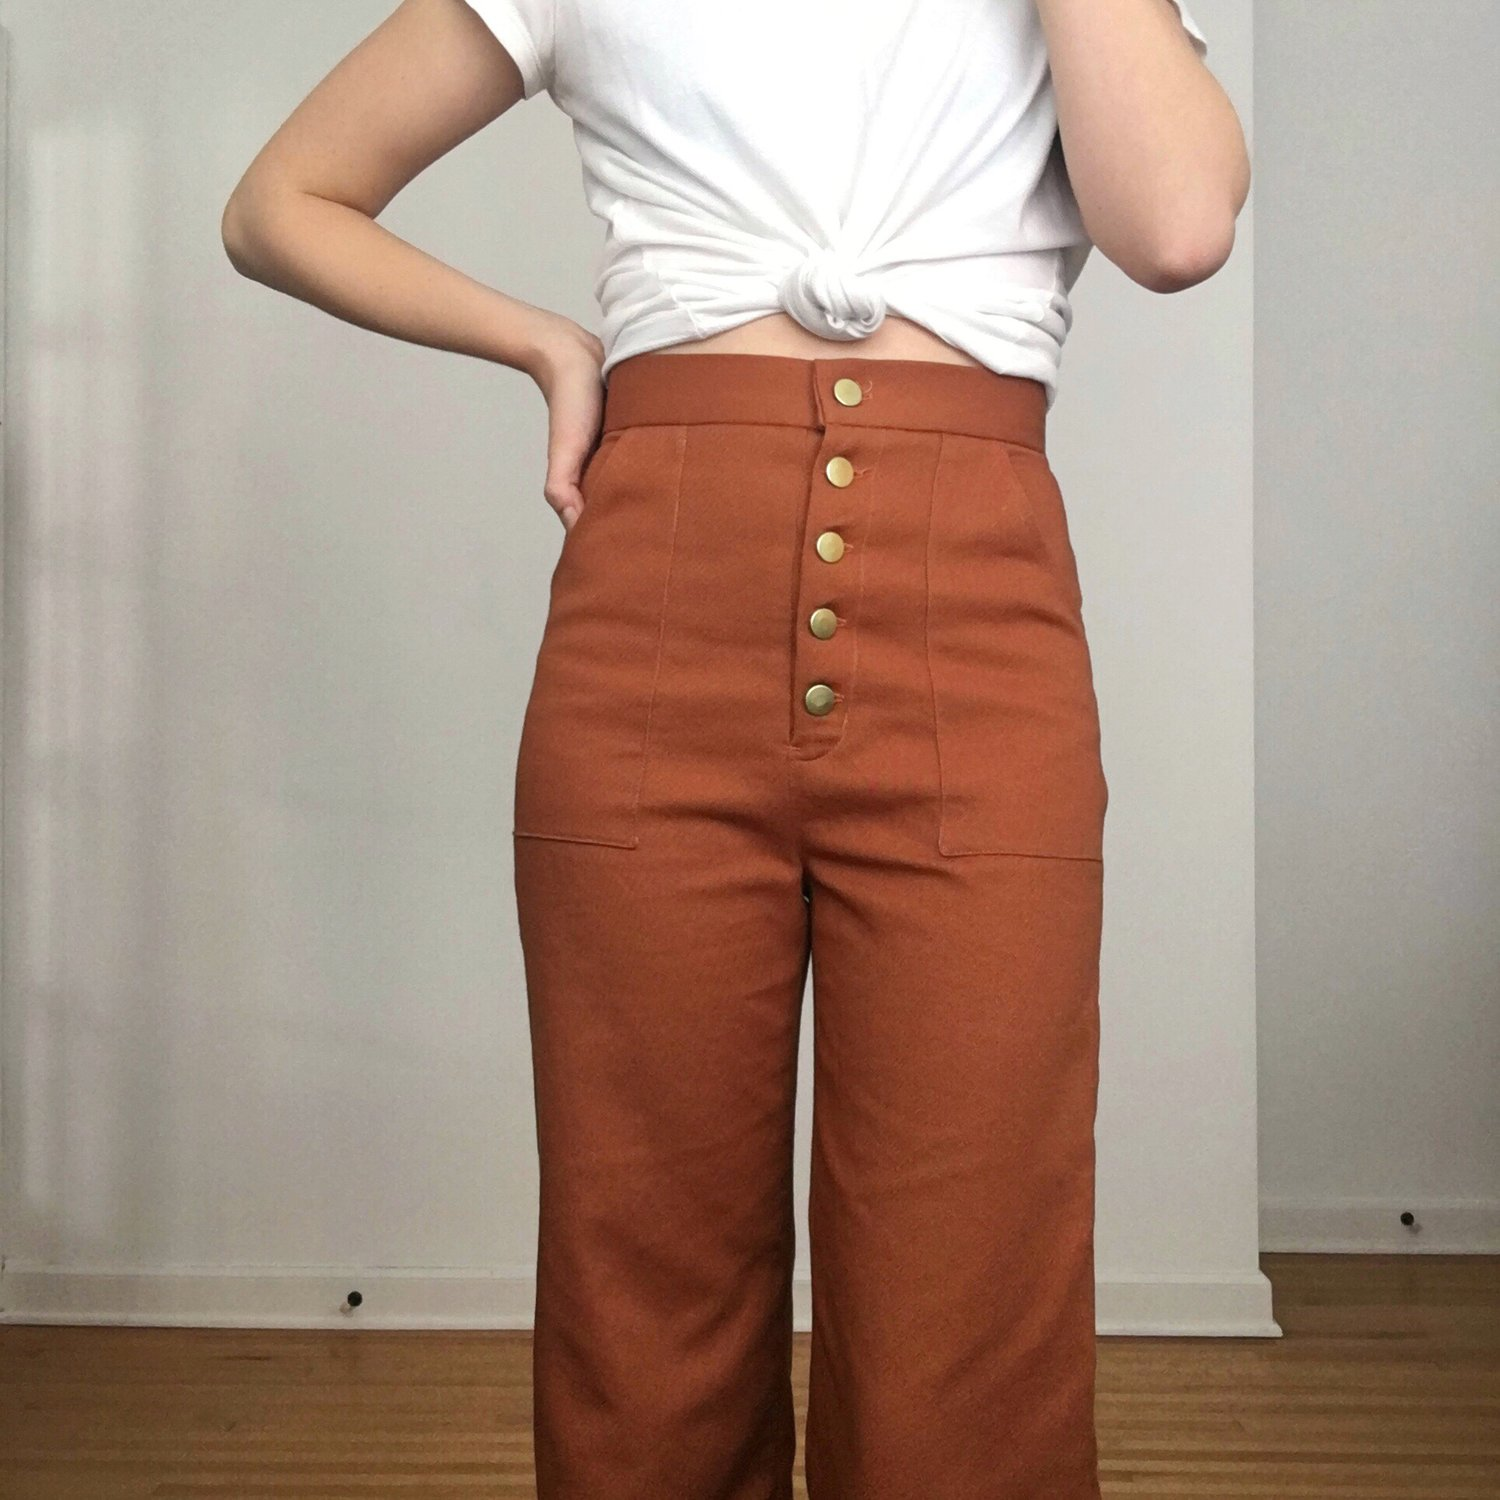 9df3fead398 The Pattern: The Lander Pant & Short by True Bias The Fabric: Ventana Twill  from Fancy Tiger Crafts in 'Brick Brown' The Process: Ever since Kelli  released ...